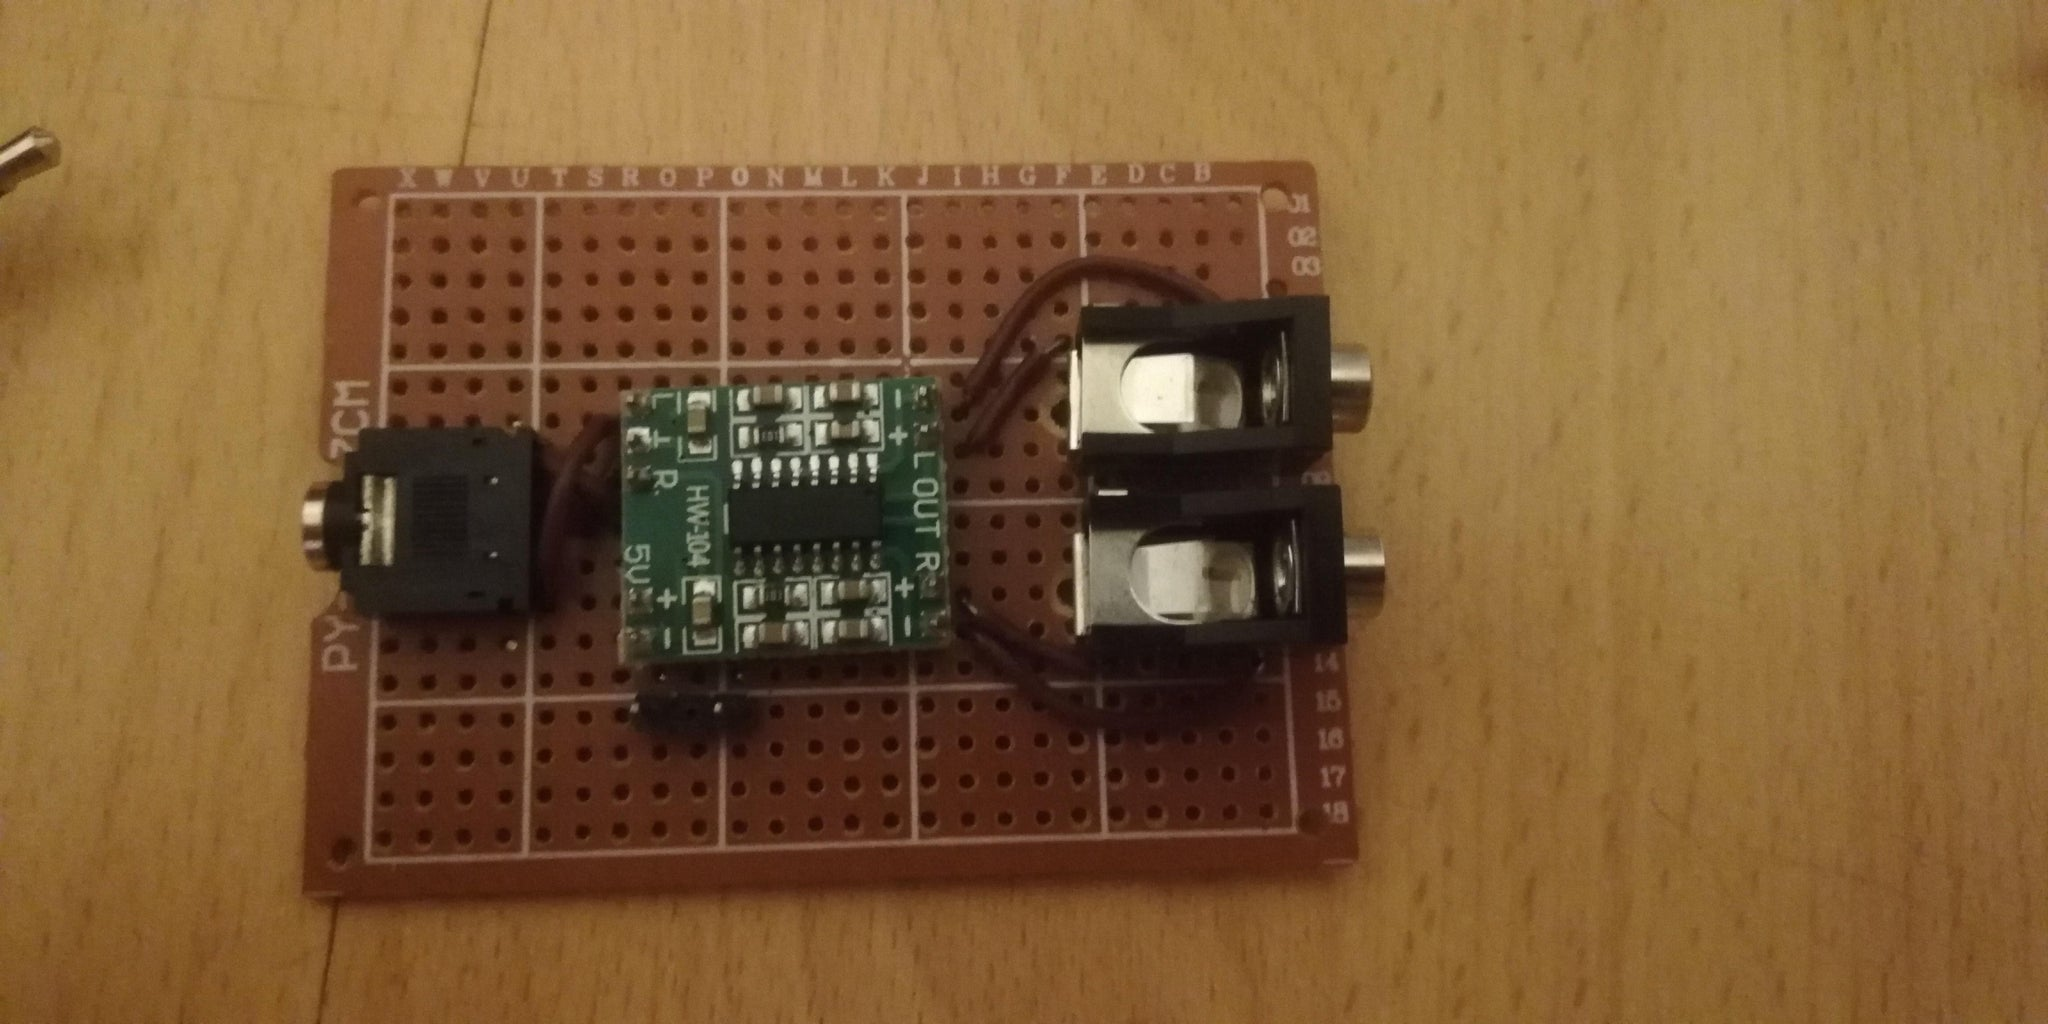 Assembling the Circuitry